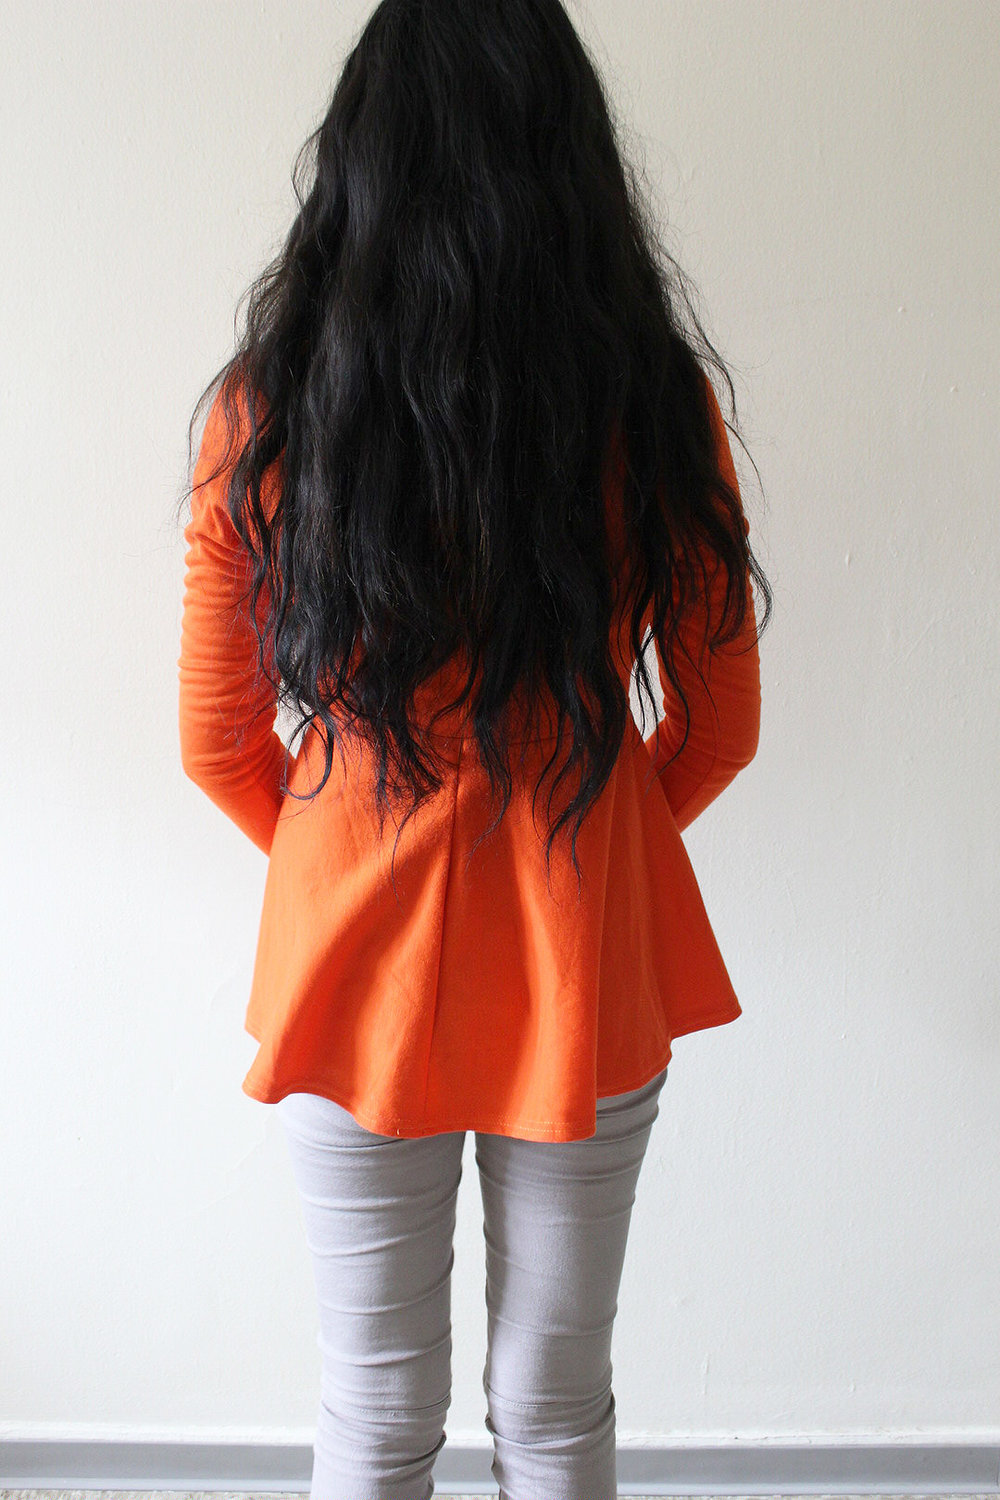 Orange-Top-Fall-Outfits-Style-Blogger-Fashionista-LINDATENCHITRAN-5-1616x1080.jpg